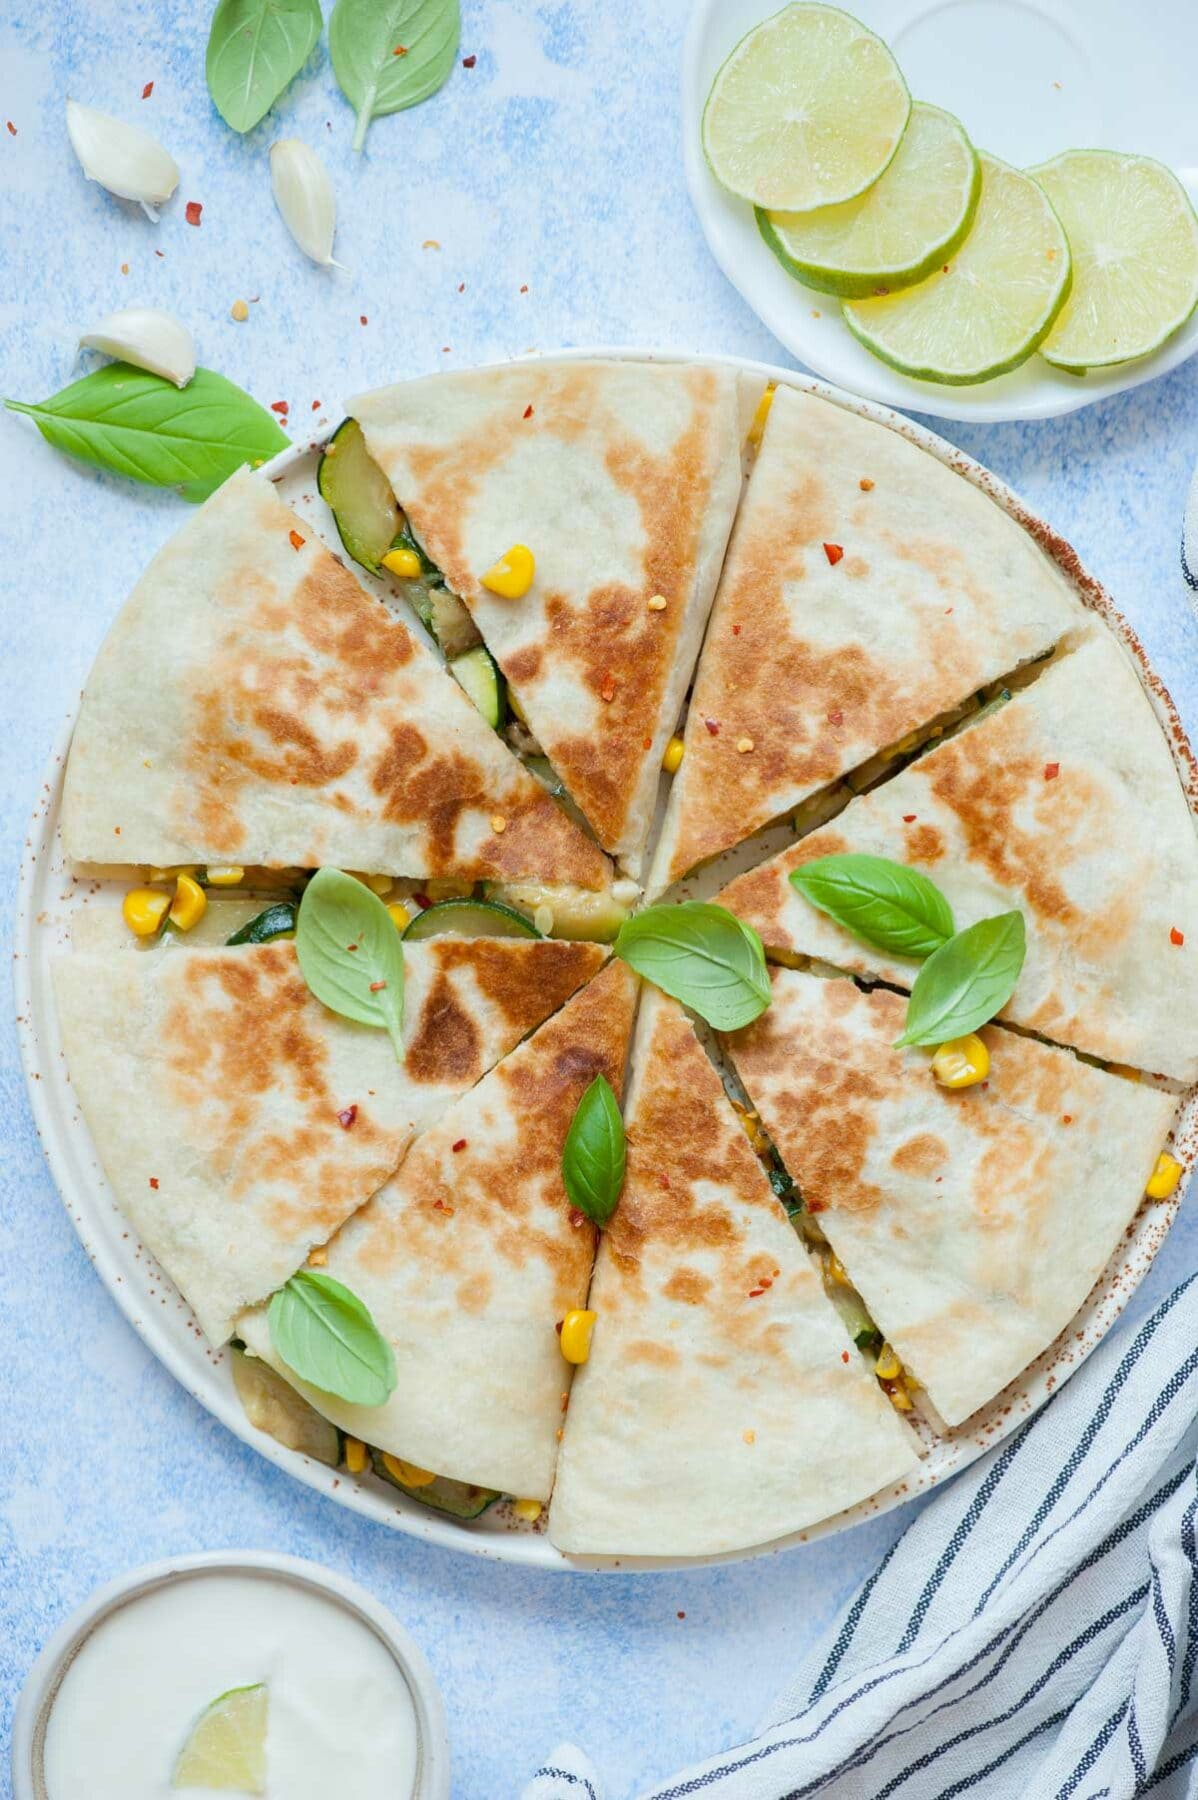 Zucchini quesadillas cut into triangles on a white plate, topped with basil leaves.